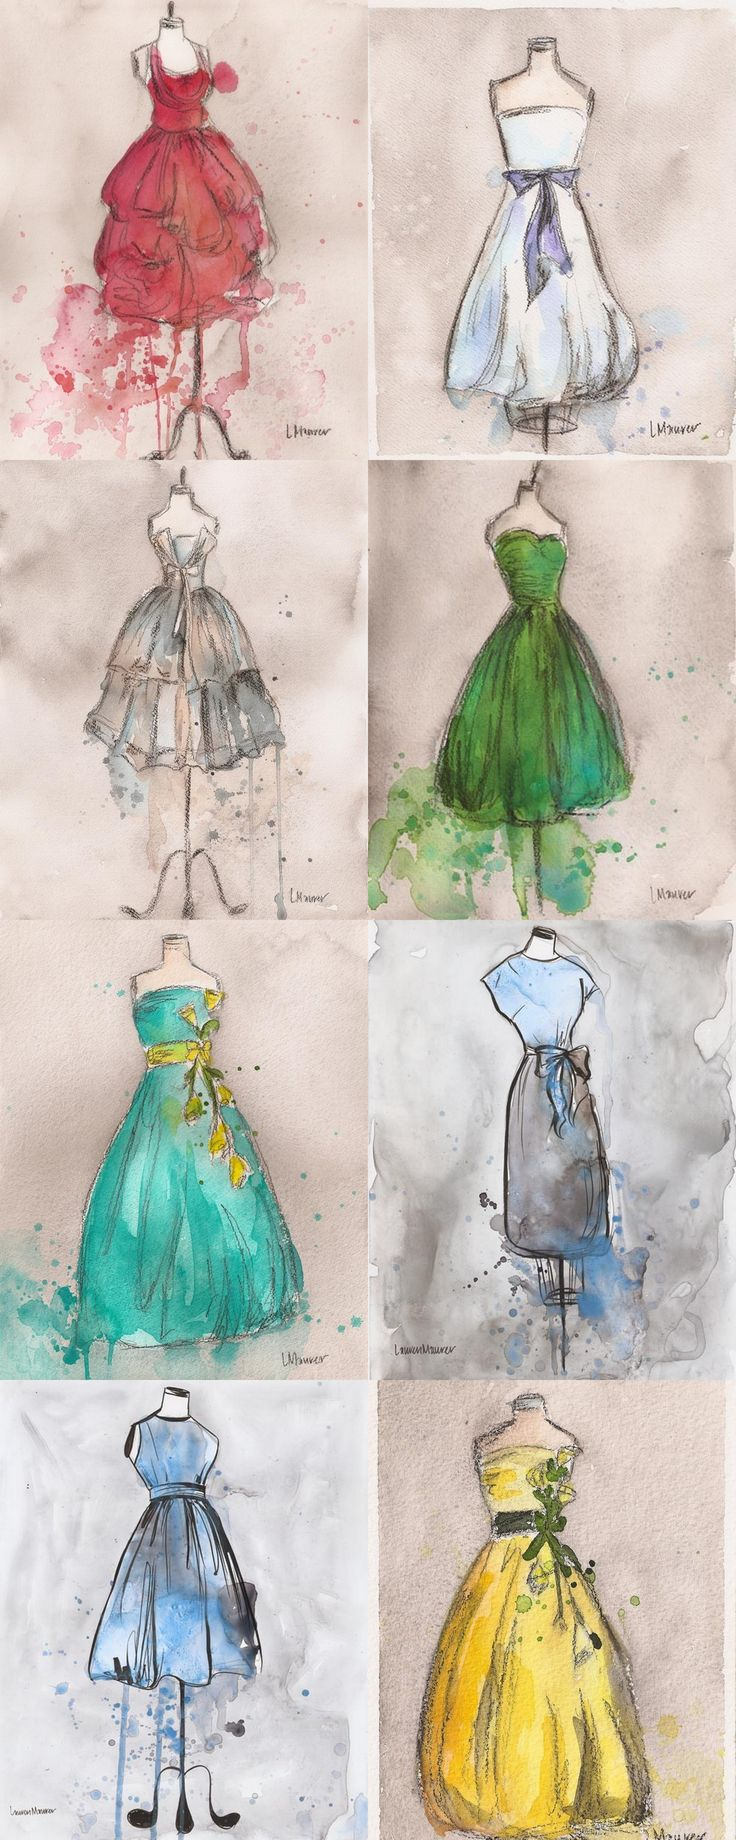 Same colour dresses different styles of painting